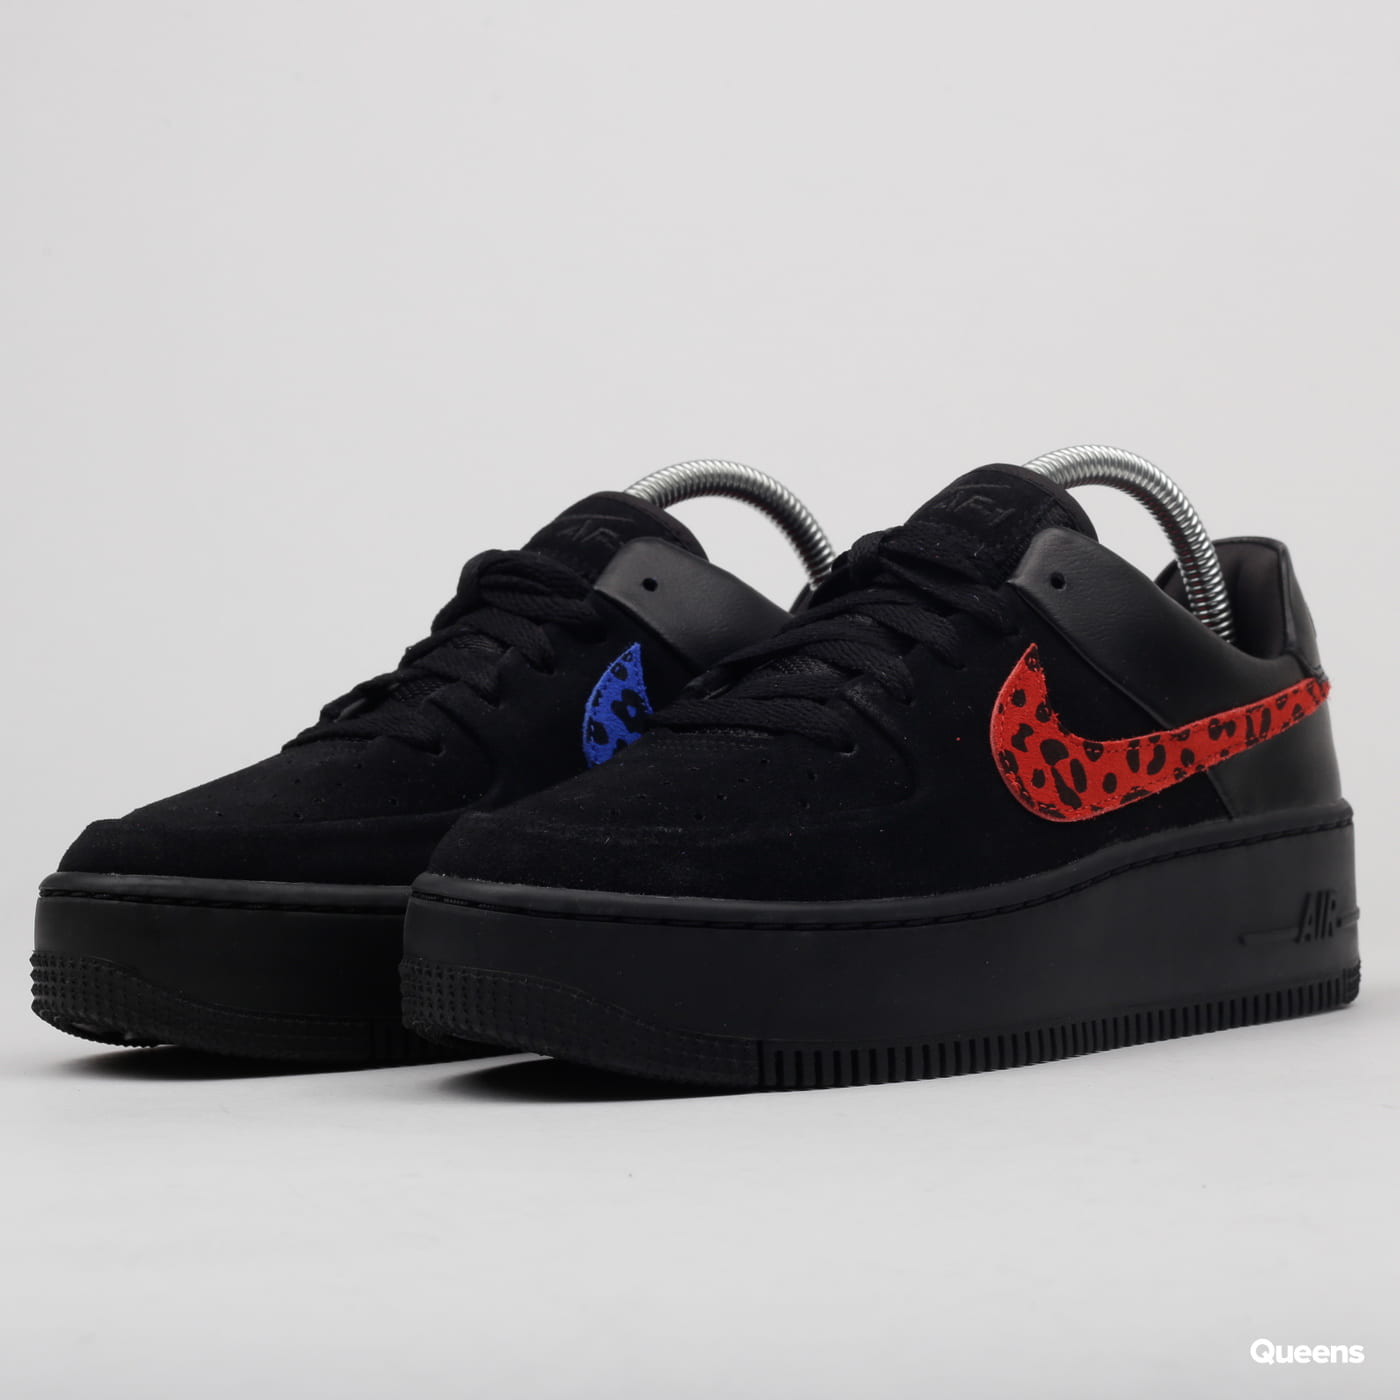 reputable site 1a2e2 9b468 Nike W Air Force 1 Sage Lo Premium black / habanero red - racer blue